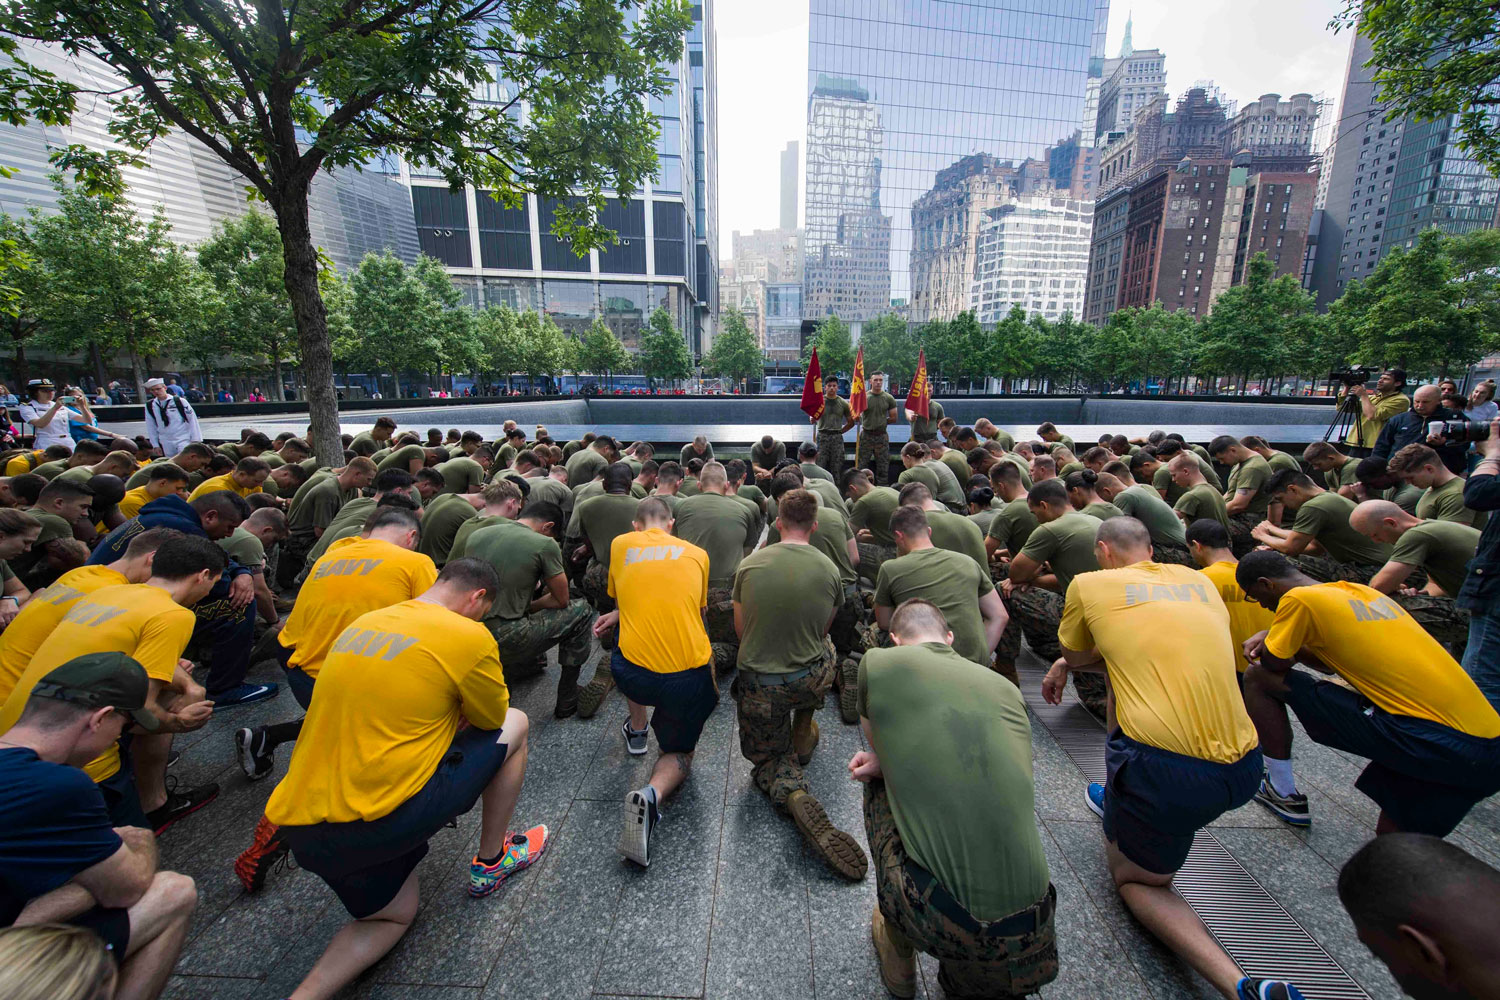 Marines and Sailors kneel during a moment of silence at the National September 11 Memorial & Museum following the second annual Freedom Run in downtown Manhattan for 2017 Fleet Week New York. Fleet Week New York, now in its 29th year, is the city's time honored celebration of the sea services. It is an unparalleled opportunity for the citizens of New York and the surrounding tri-state area to meet Sailors, Marines and Coast Guardsmen, as well as witness firsthand the latest capabilities of today's maritime services.